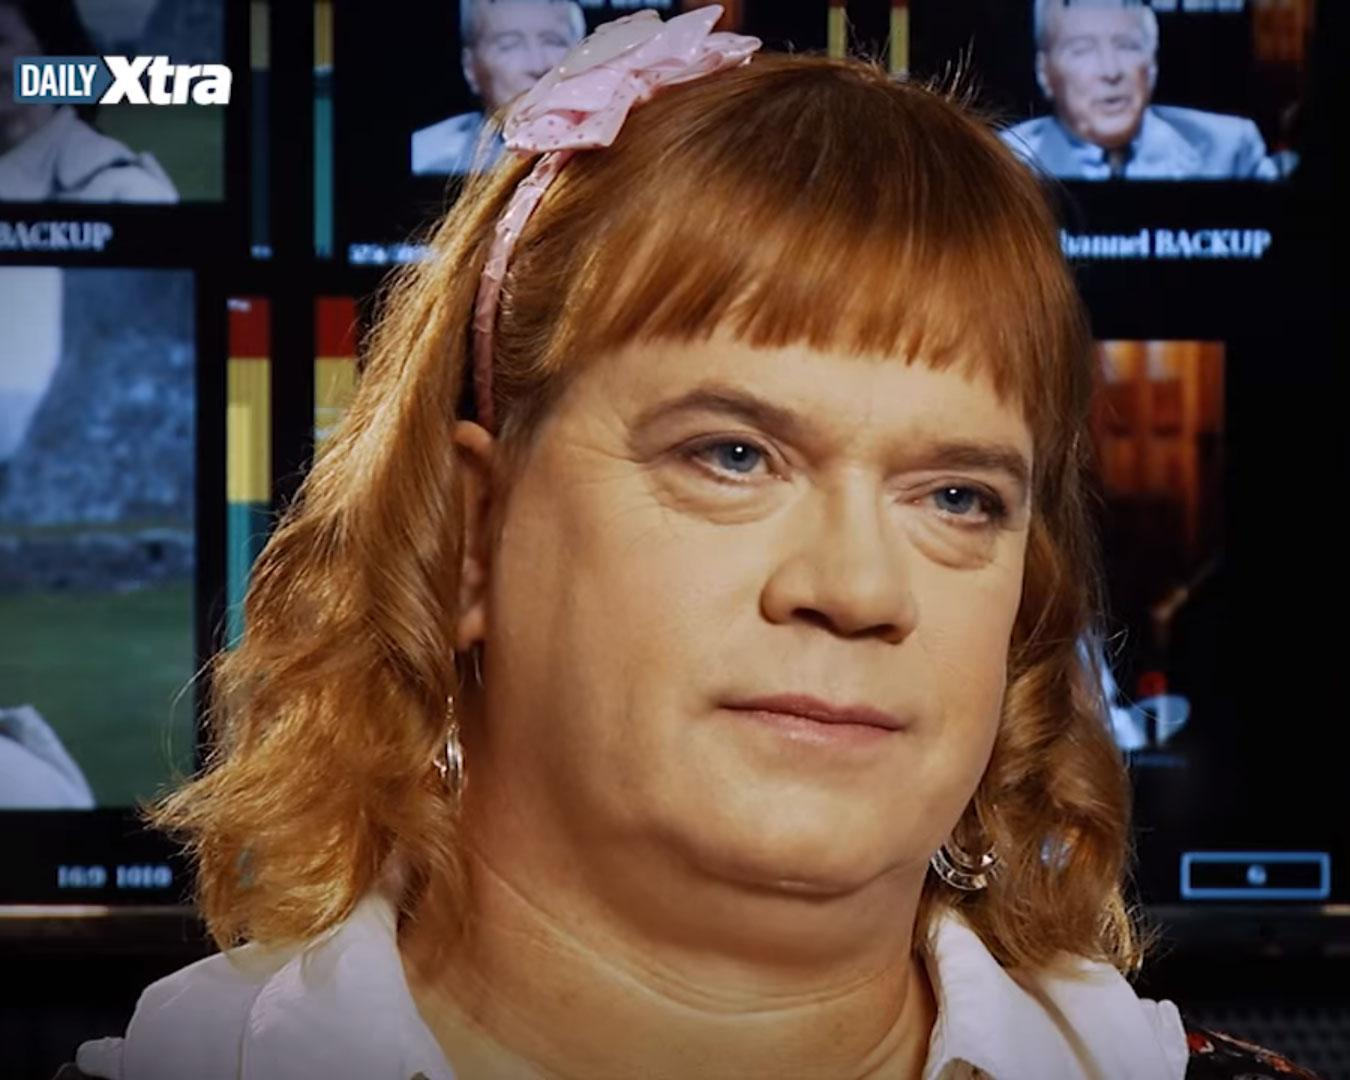 A 52-year-old man puts on a wig and a dress and insists he is a 6-year-old girl. Again, in the Modern Era, we would have deferred to the Truth and told him to seek psychiatric treatment. Today however, where Love is all that matters, we again affirm him in his delusion to spare his feelings. We deny the truth, not just of his sex, but of his age too. More absurdity.